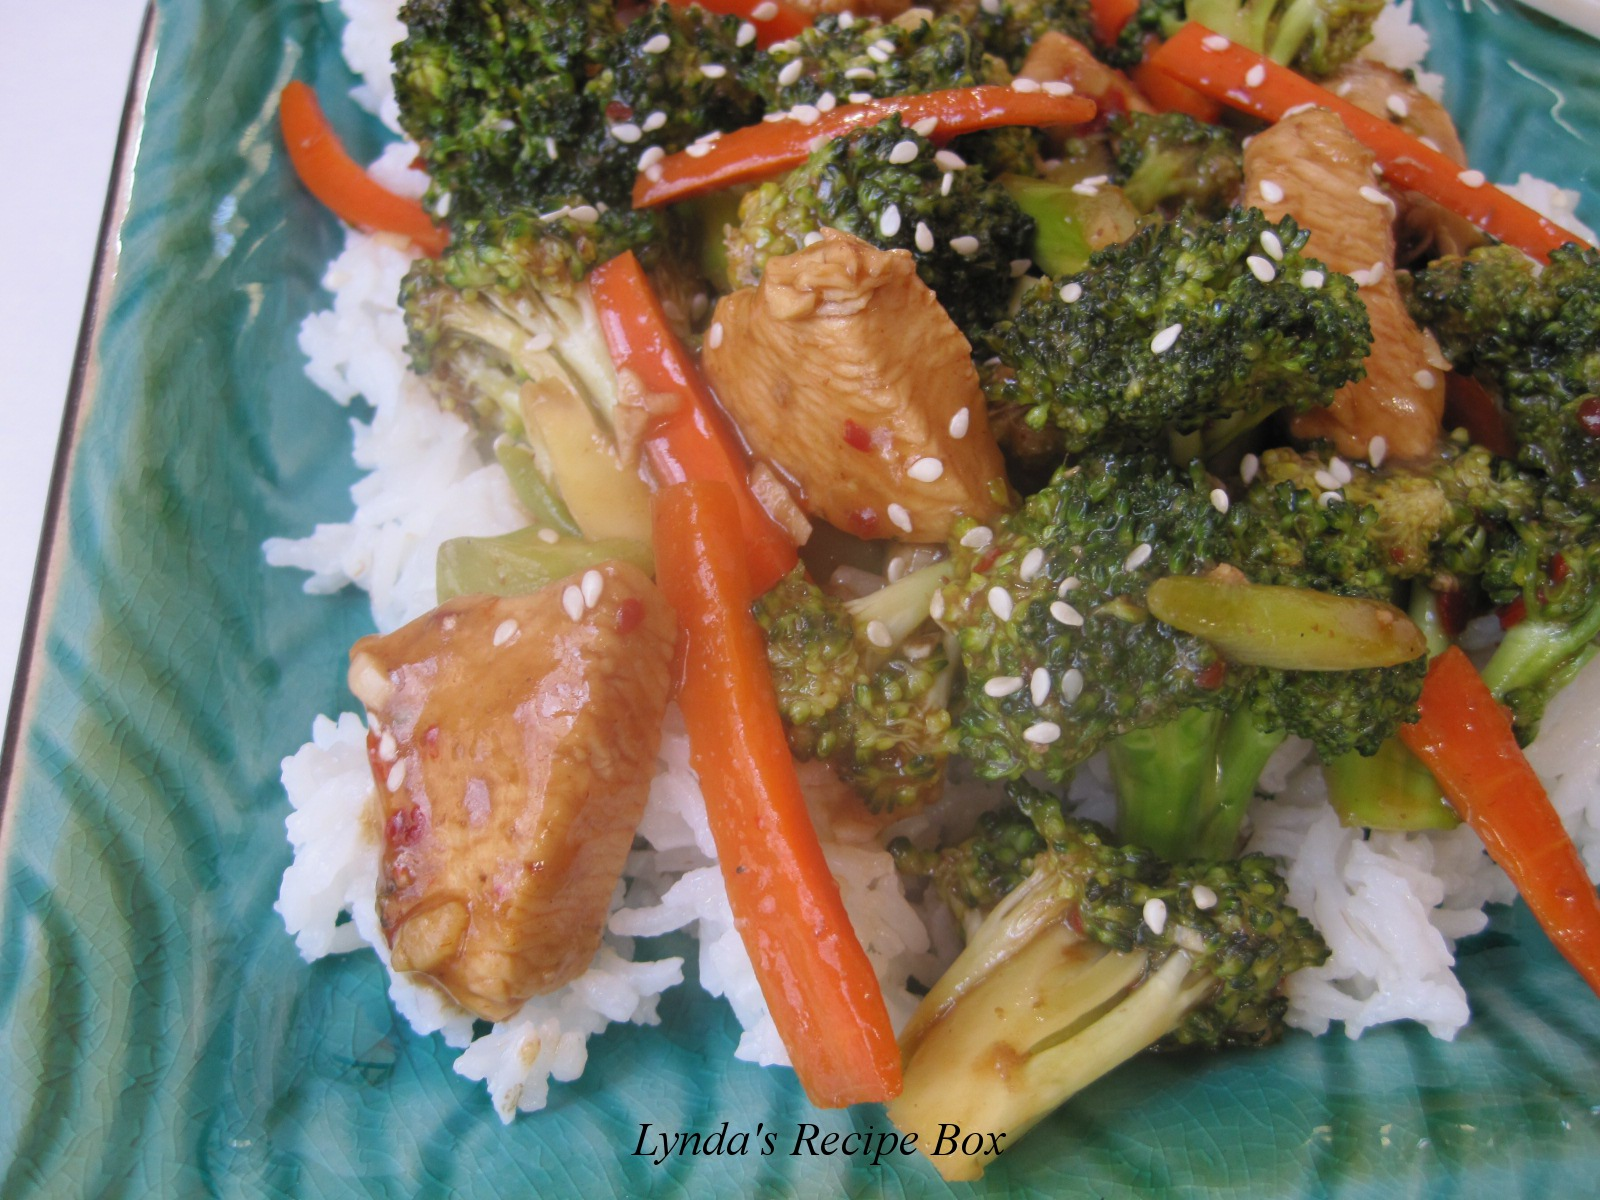 Lyndas recipe box chicken and broccoli stir fry chicken and broccoli stir fry adapted from food network hint have all the ingredients chopped minced and with in reach and this dish will come together forumfinder Gallery